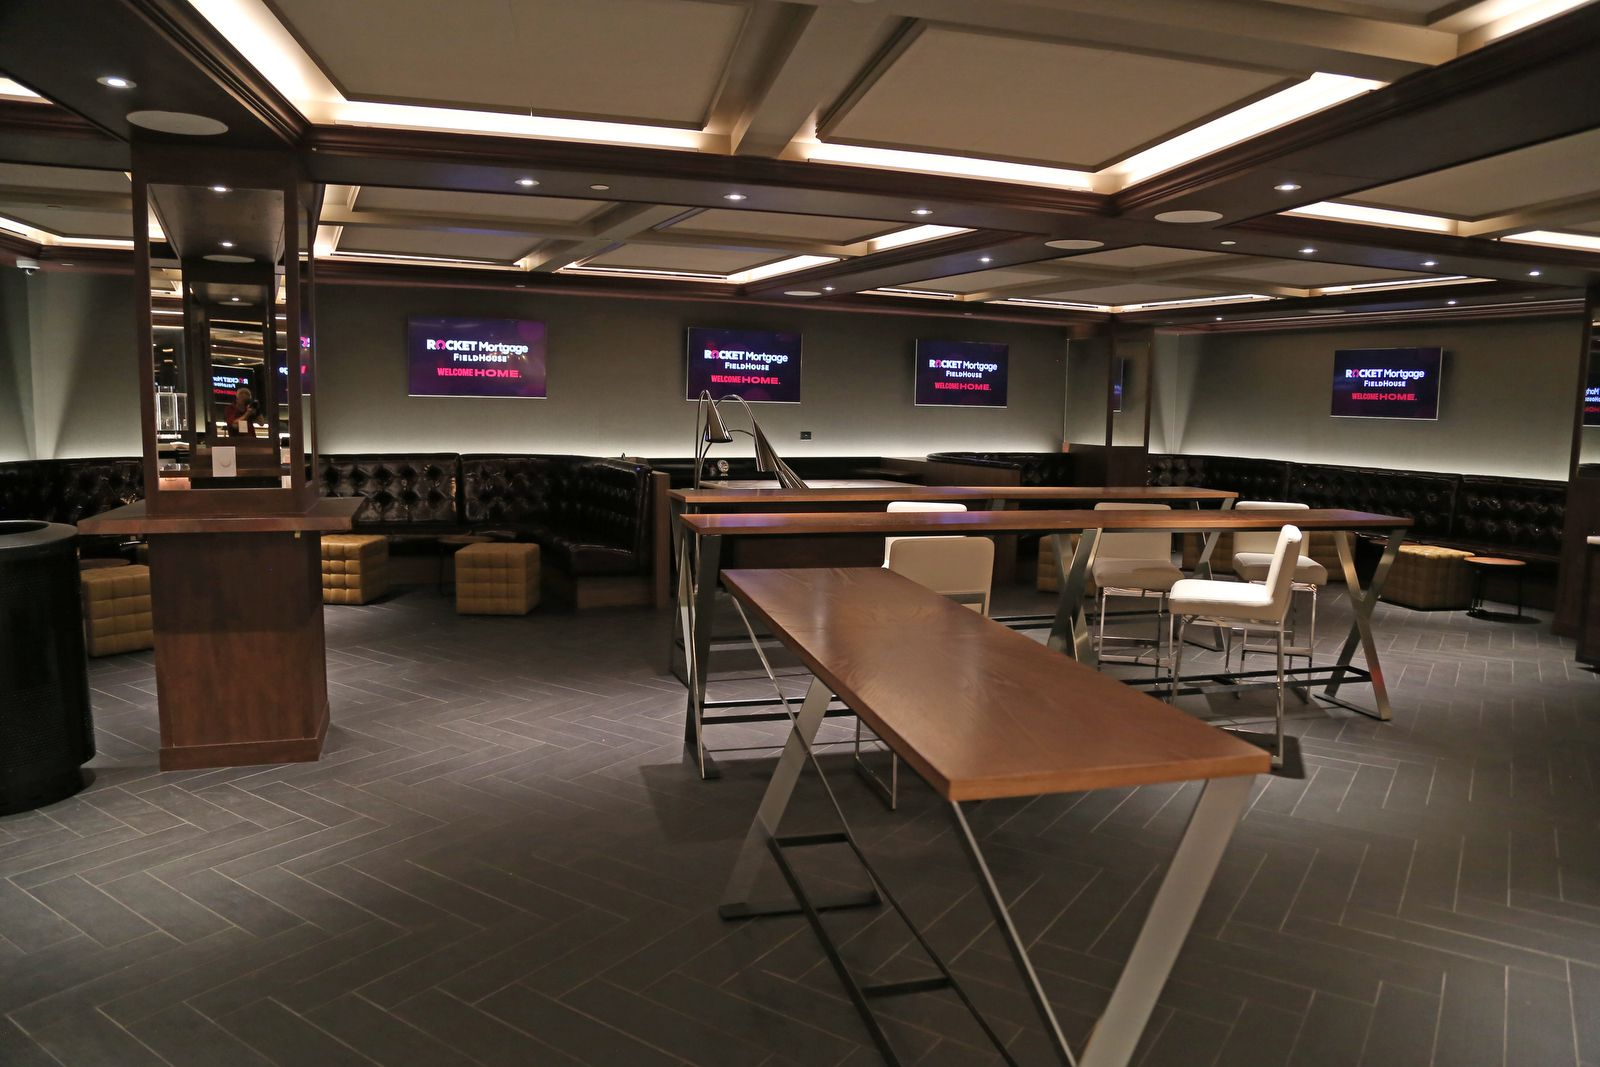 Rocket Mortgage Fieldhouse S Clubs And Suites Offer Luxury With A